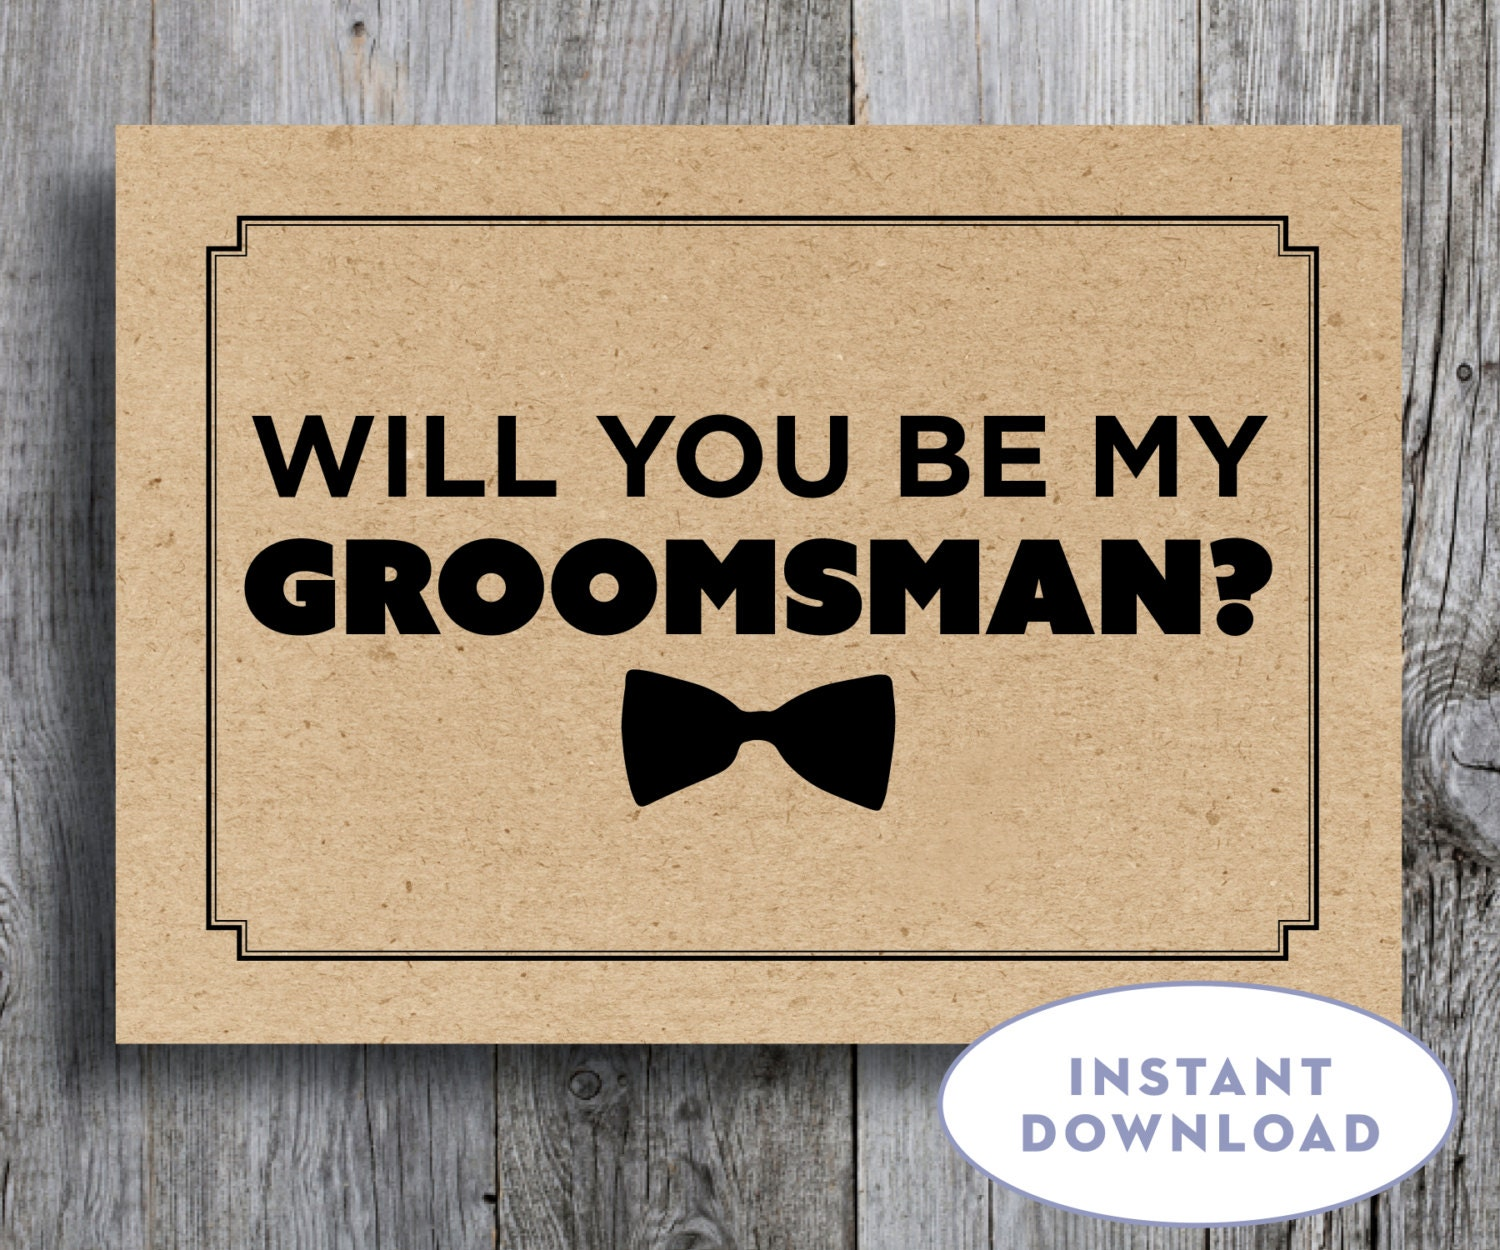 Striking image in will you be my groomsman printable